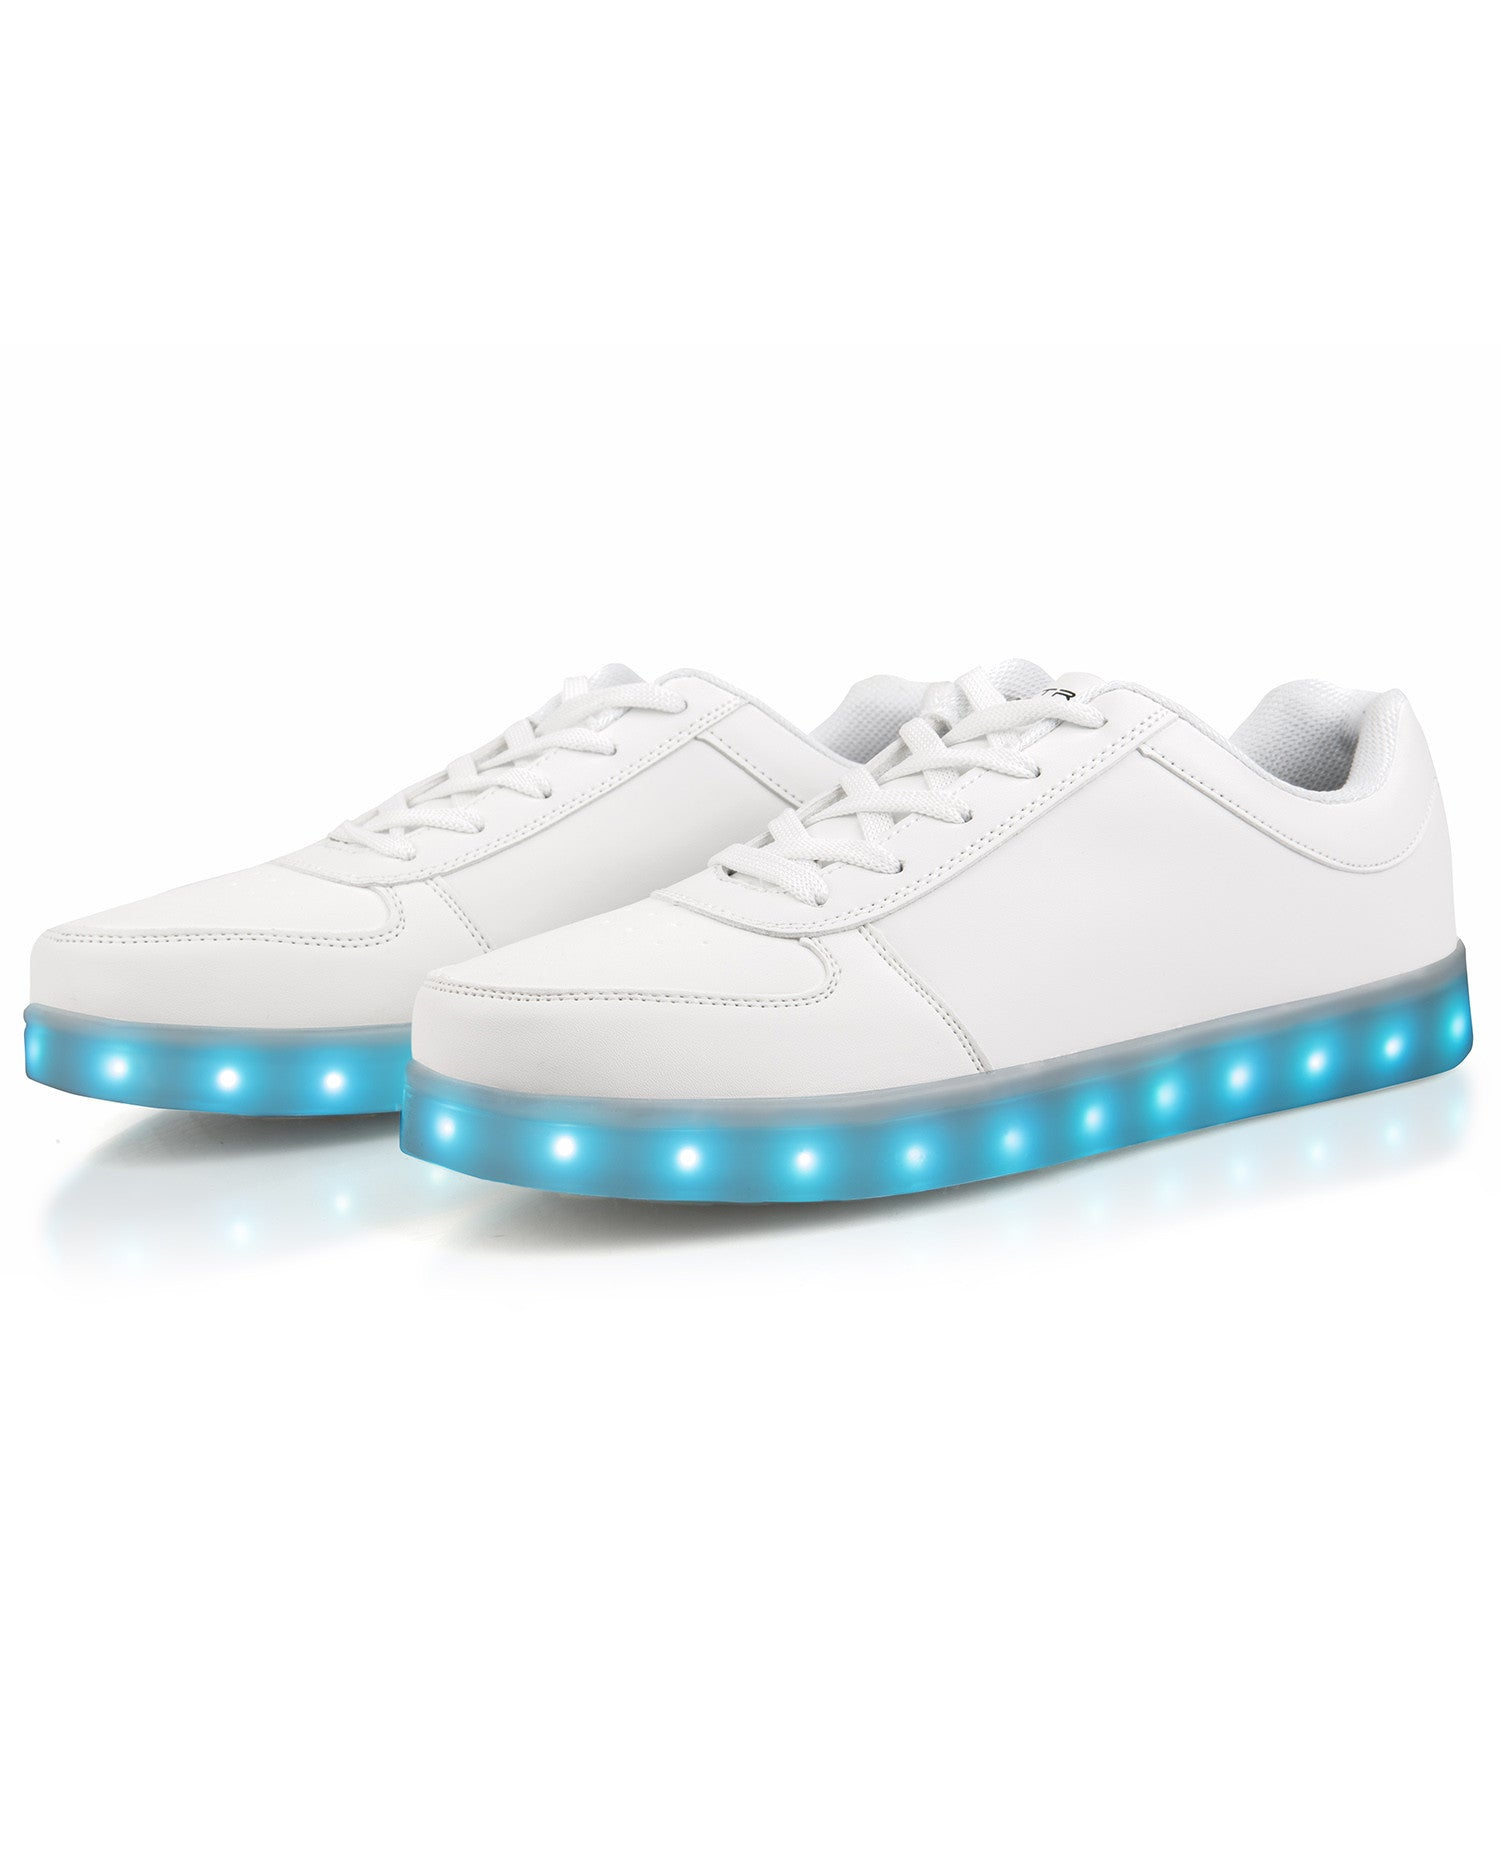 Electric Shoes - The Original - Electric Styles | World's Number 1 Light Up Shoe Store - {product_type}} -  - 5